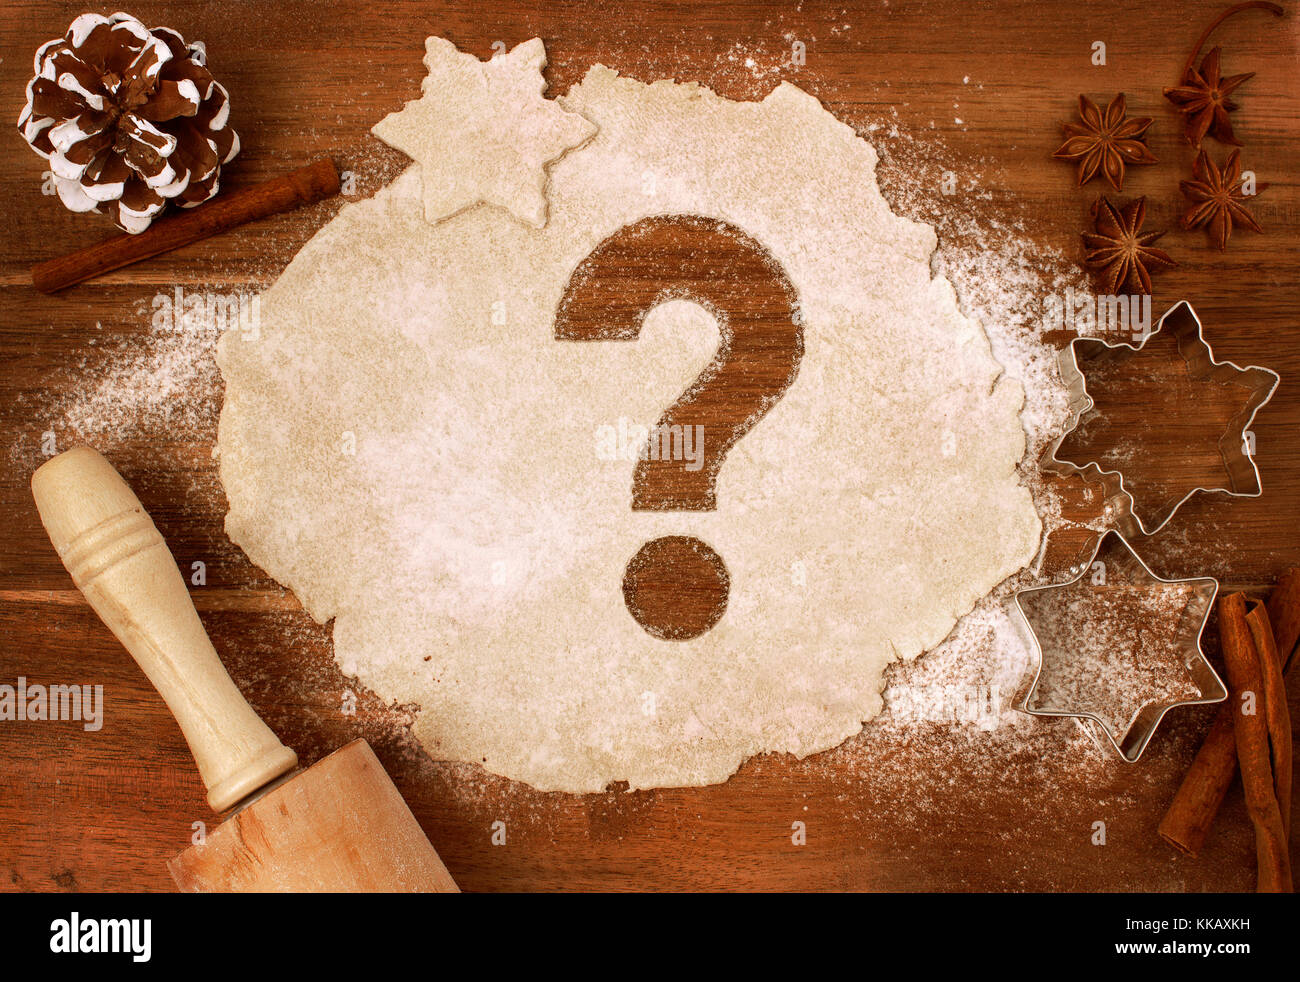 Festive cookie dough with the shape of a question mark cut out (series) - Stock Image